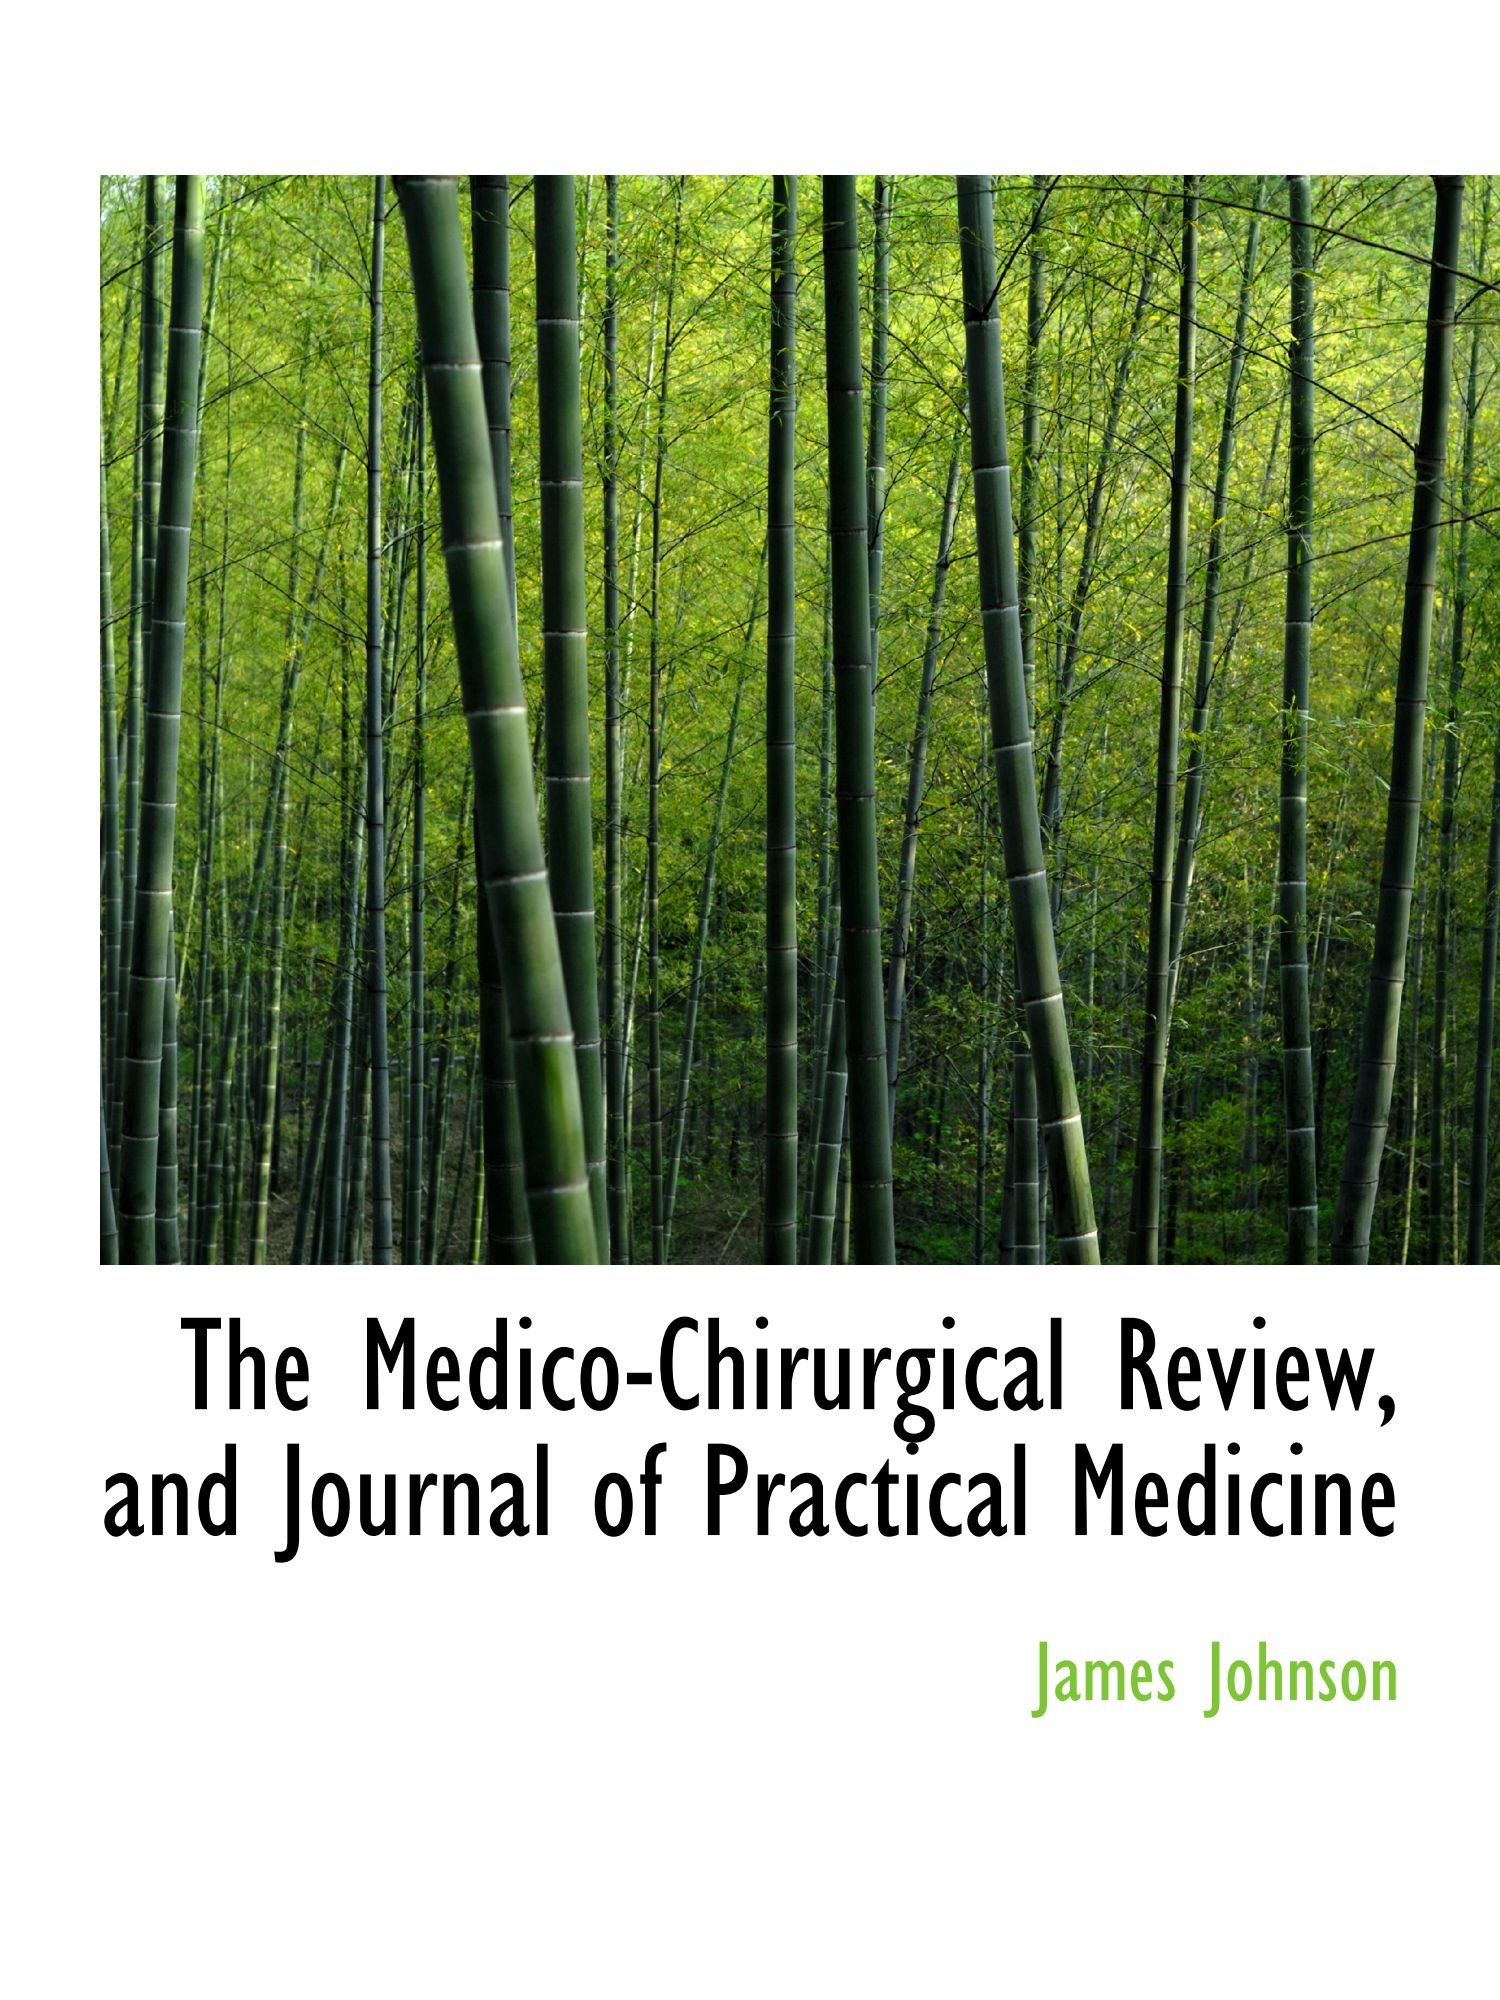 Download The Medico-Chirurgical Review, and Journal of Practical Medicine PDF